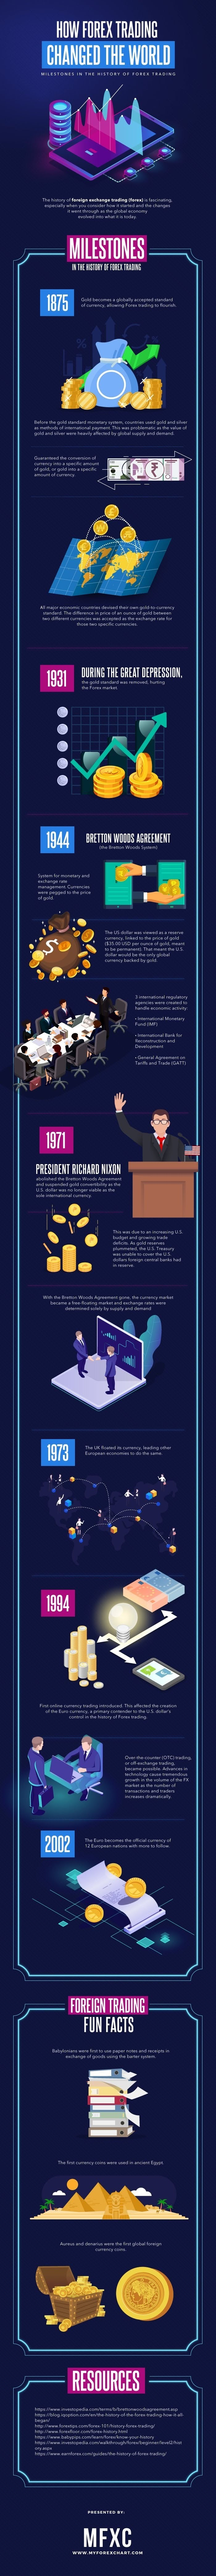 How Forex Trading Changed The World #infographic